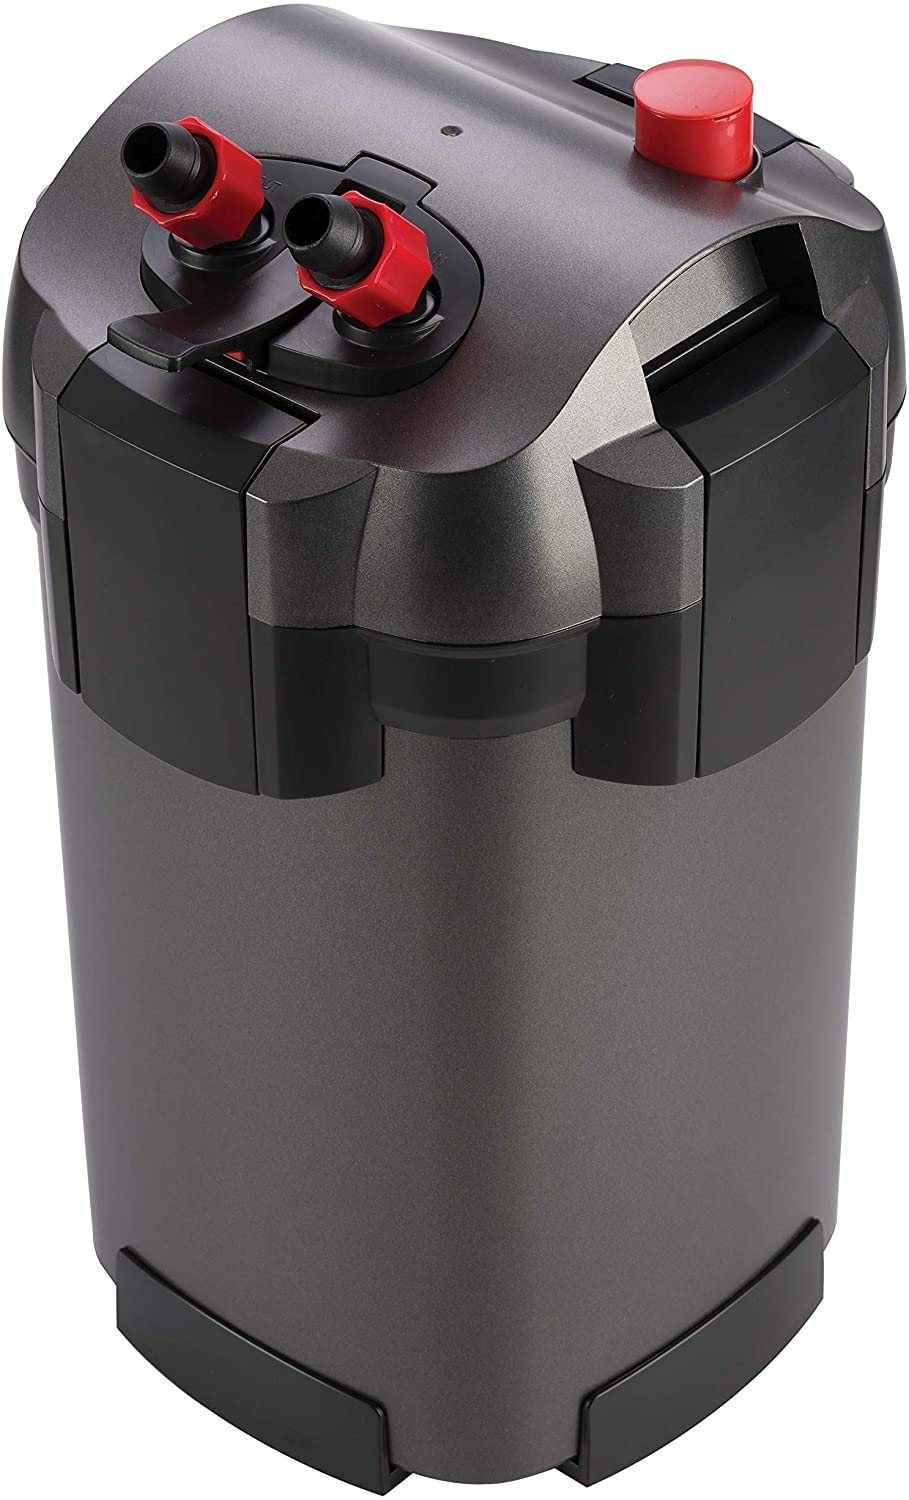 Marineland Magniflow Canister Filter- best canister filter review and  Maintenance